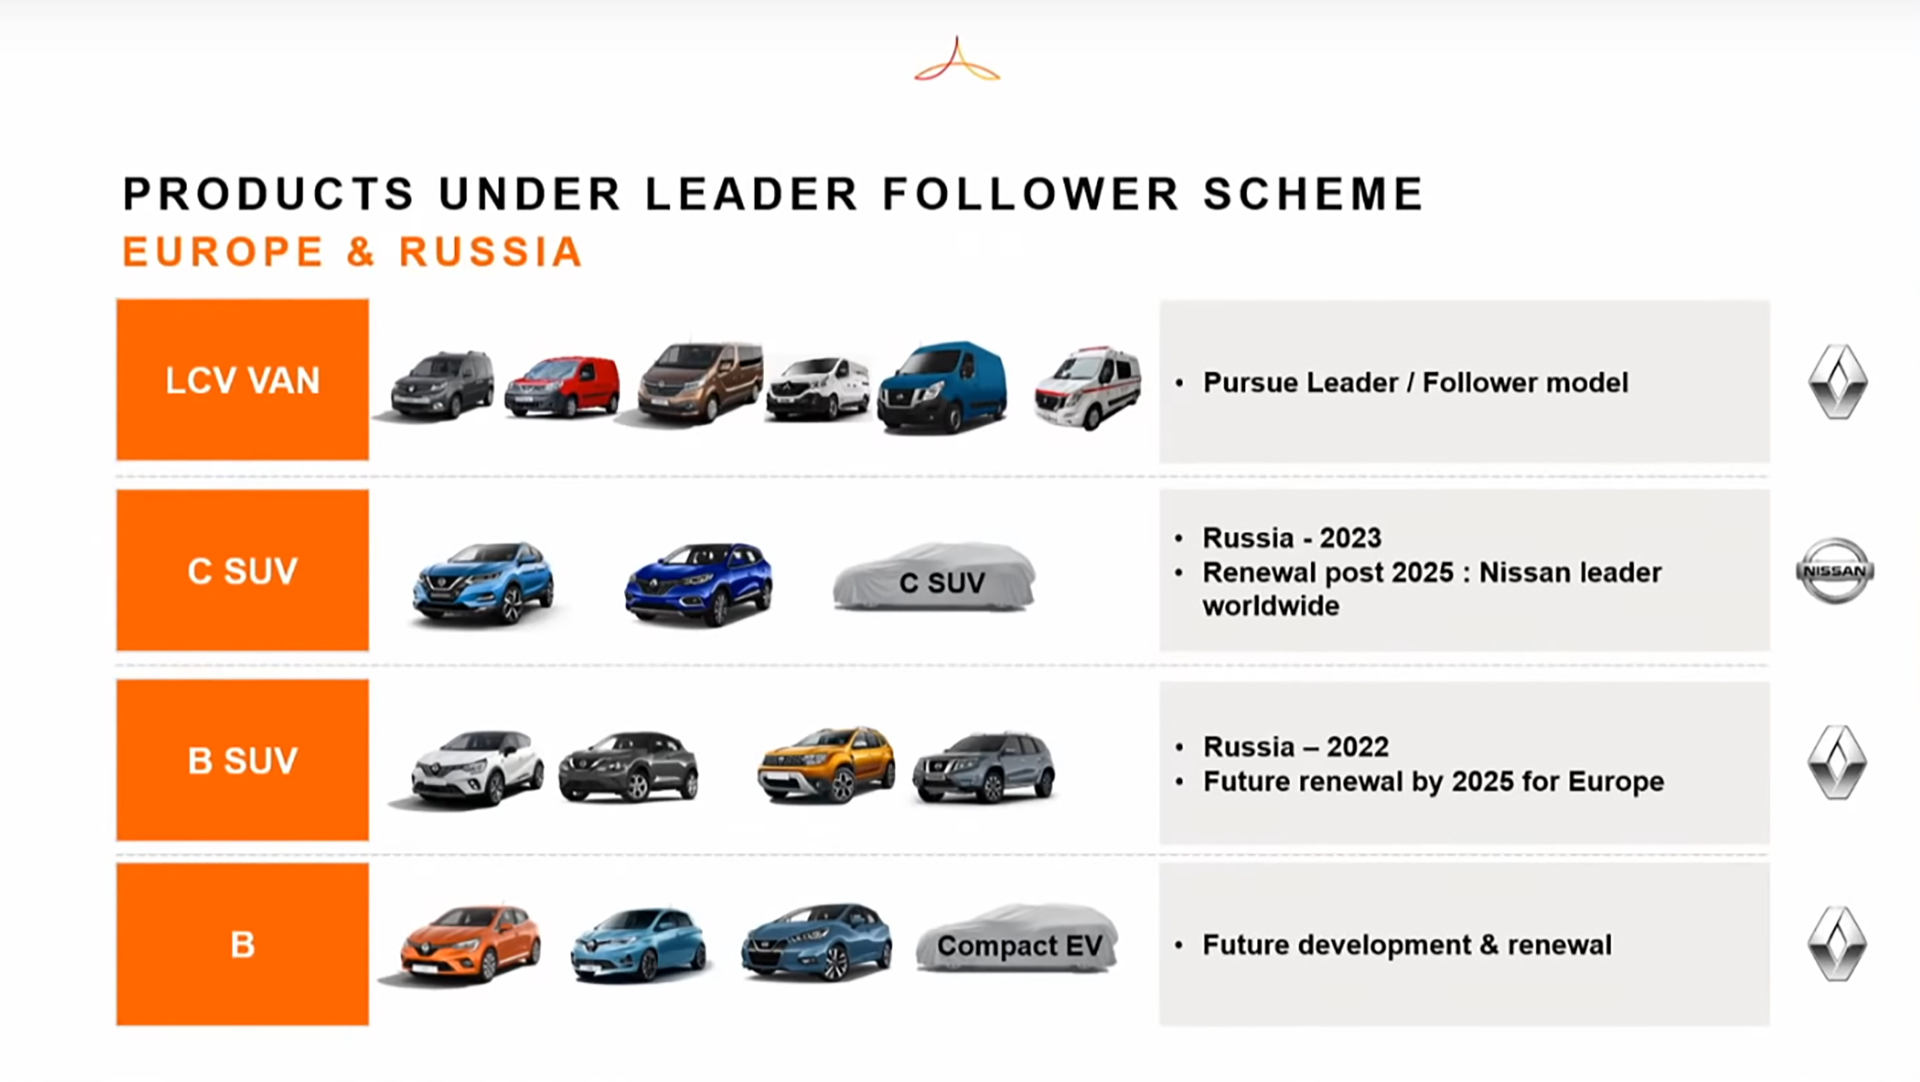 Alliance Renault Nissan Mitsubishi - 2020 - Alliance new cooperation business model - products - Europe - Russia